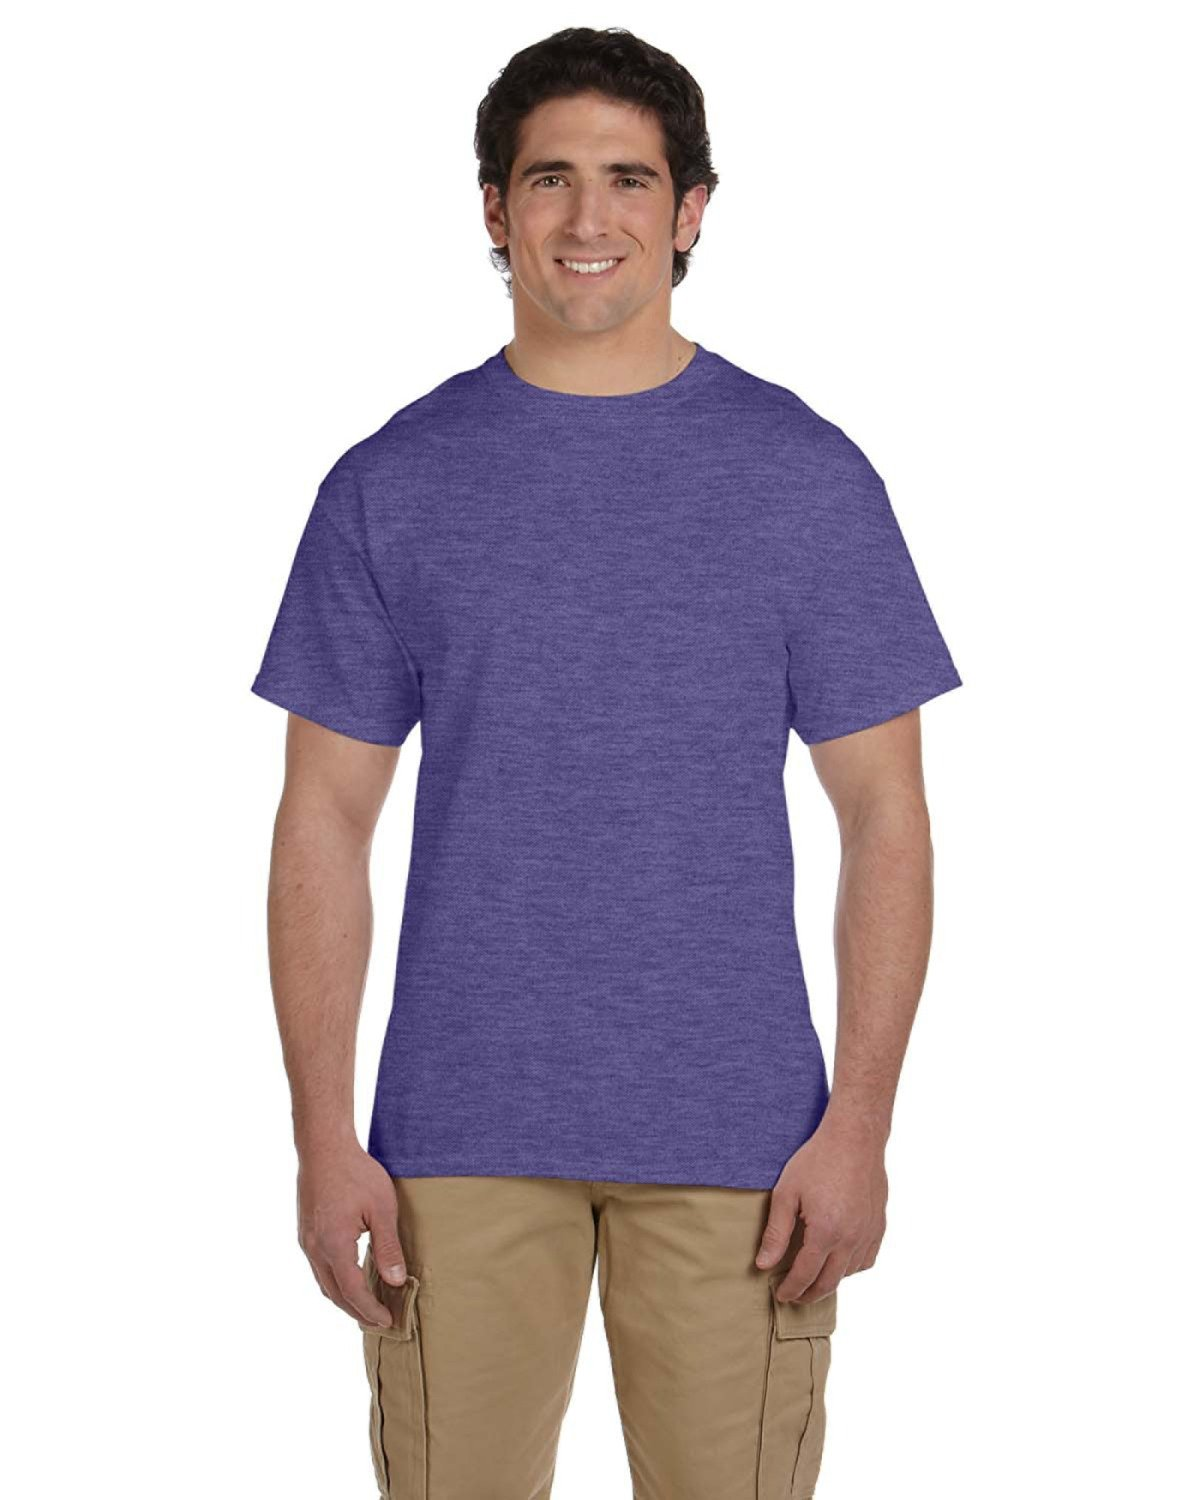 Fruit of the Loom Adult HD Cotton™ T-Shirt RETRO HTH PURP